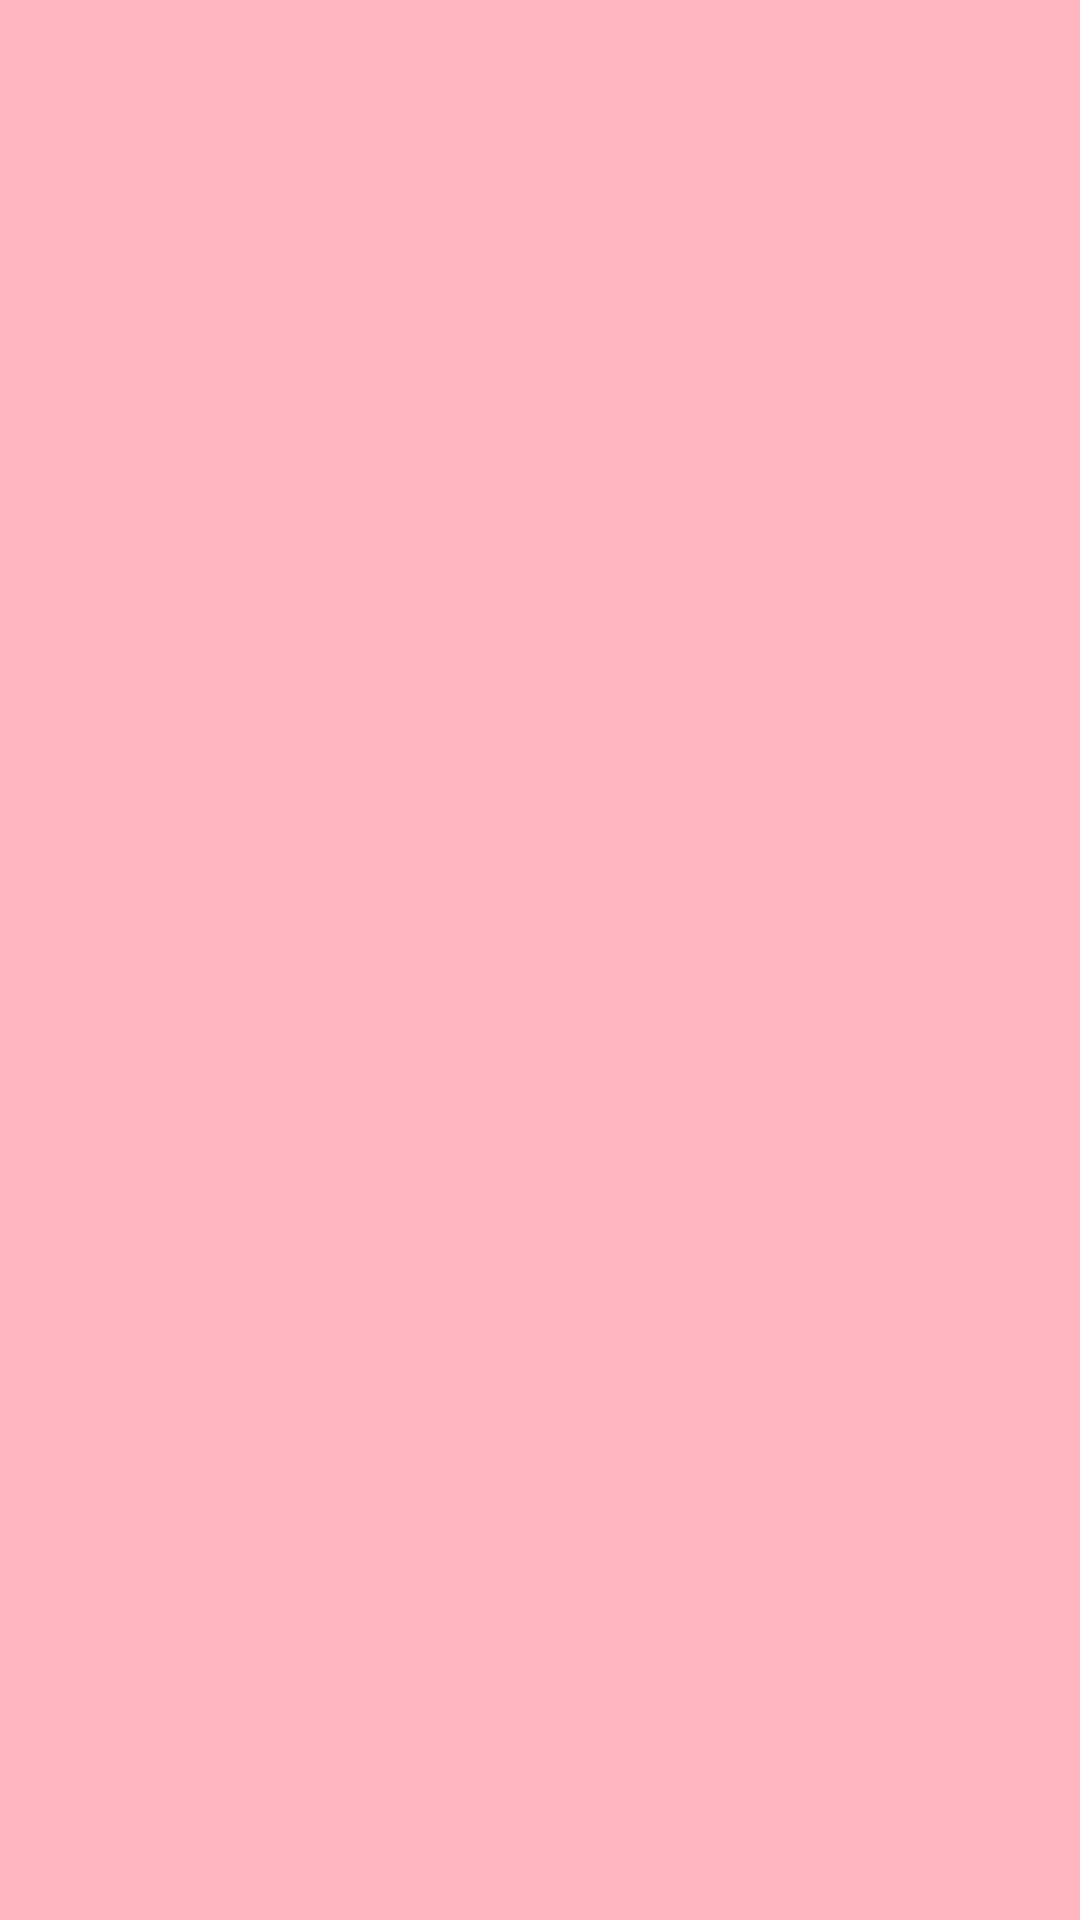 1080x1920 Light Pink Solid Color Background